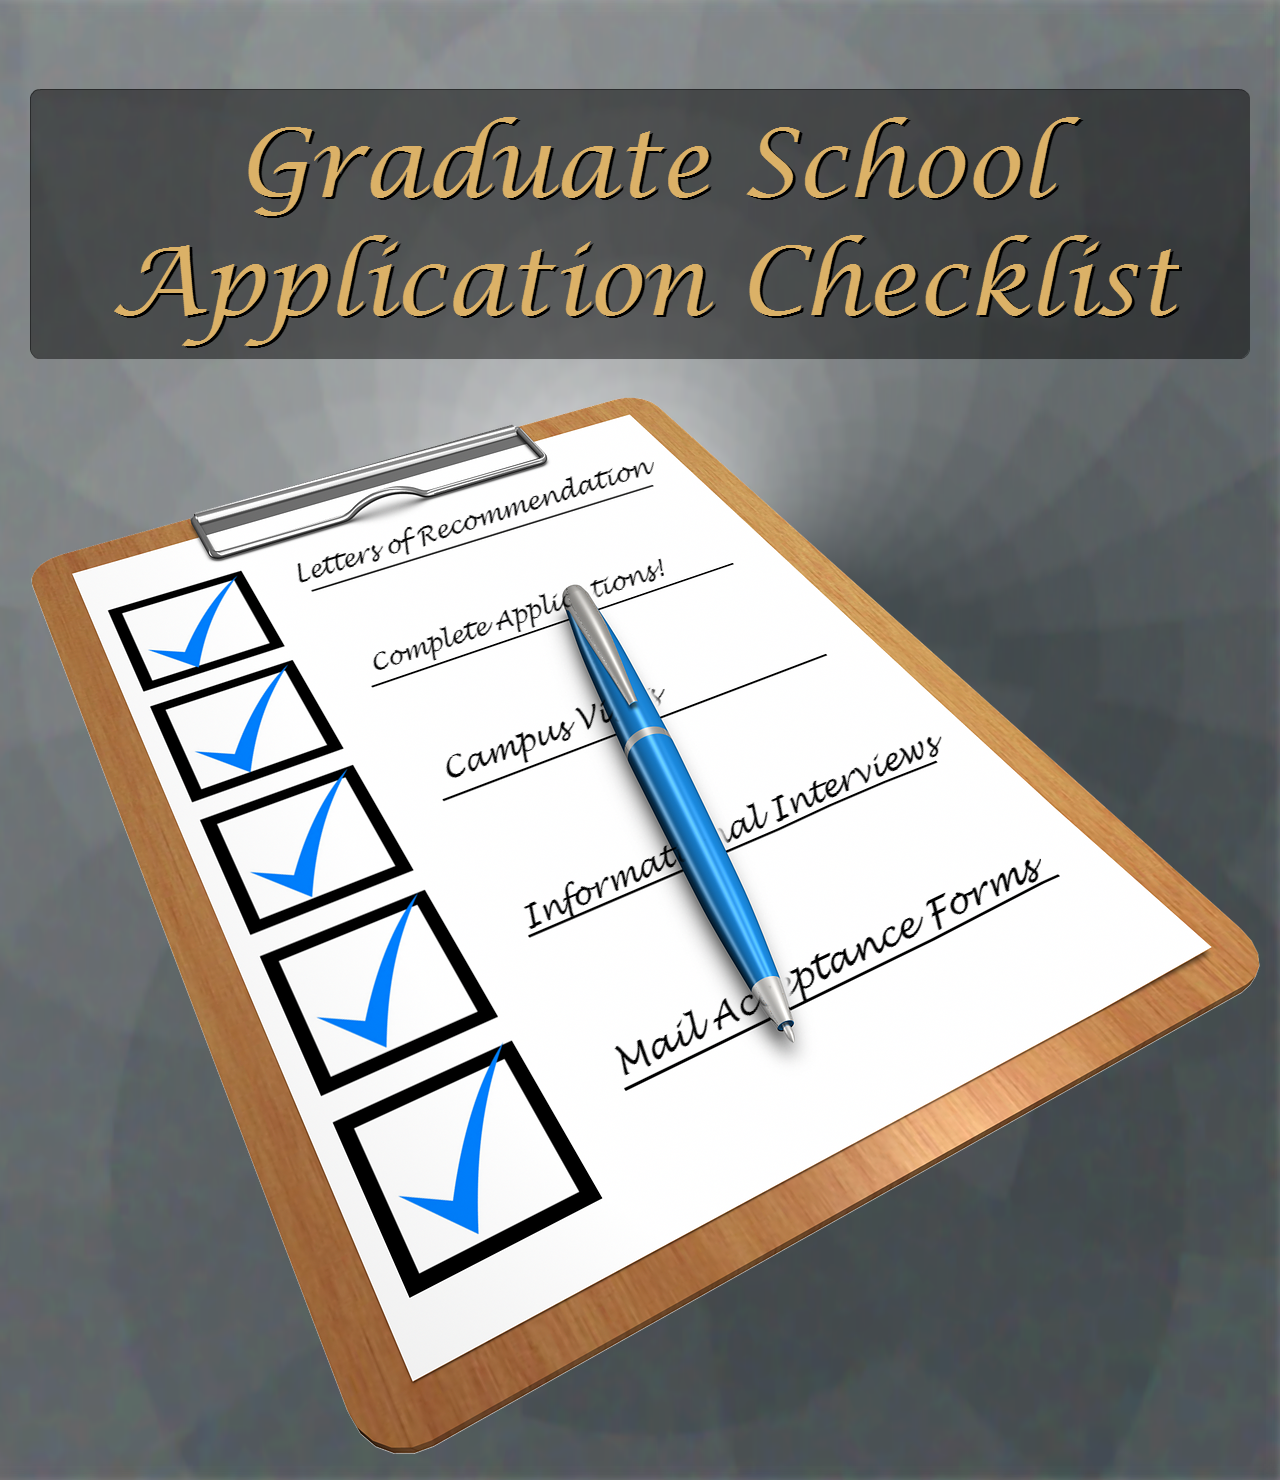 Graduate School Application Checklist  Mymoneypurdue. Contractor Non Compete Agreement Template. Straight Outta Meme Generator. Note Card Template Word. Graduate Assistant Athletic Training. Caption For Graduation Picture. Hours Of Operation Template. Fall Facebook Cover Photos. Commercial Lease Agreement Template